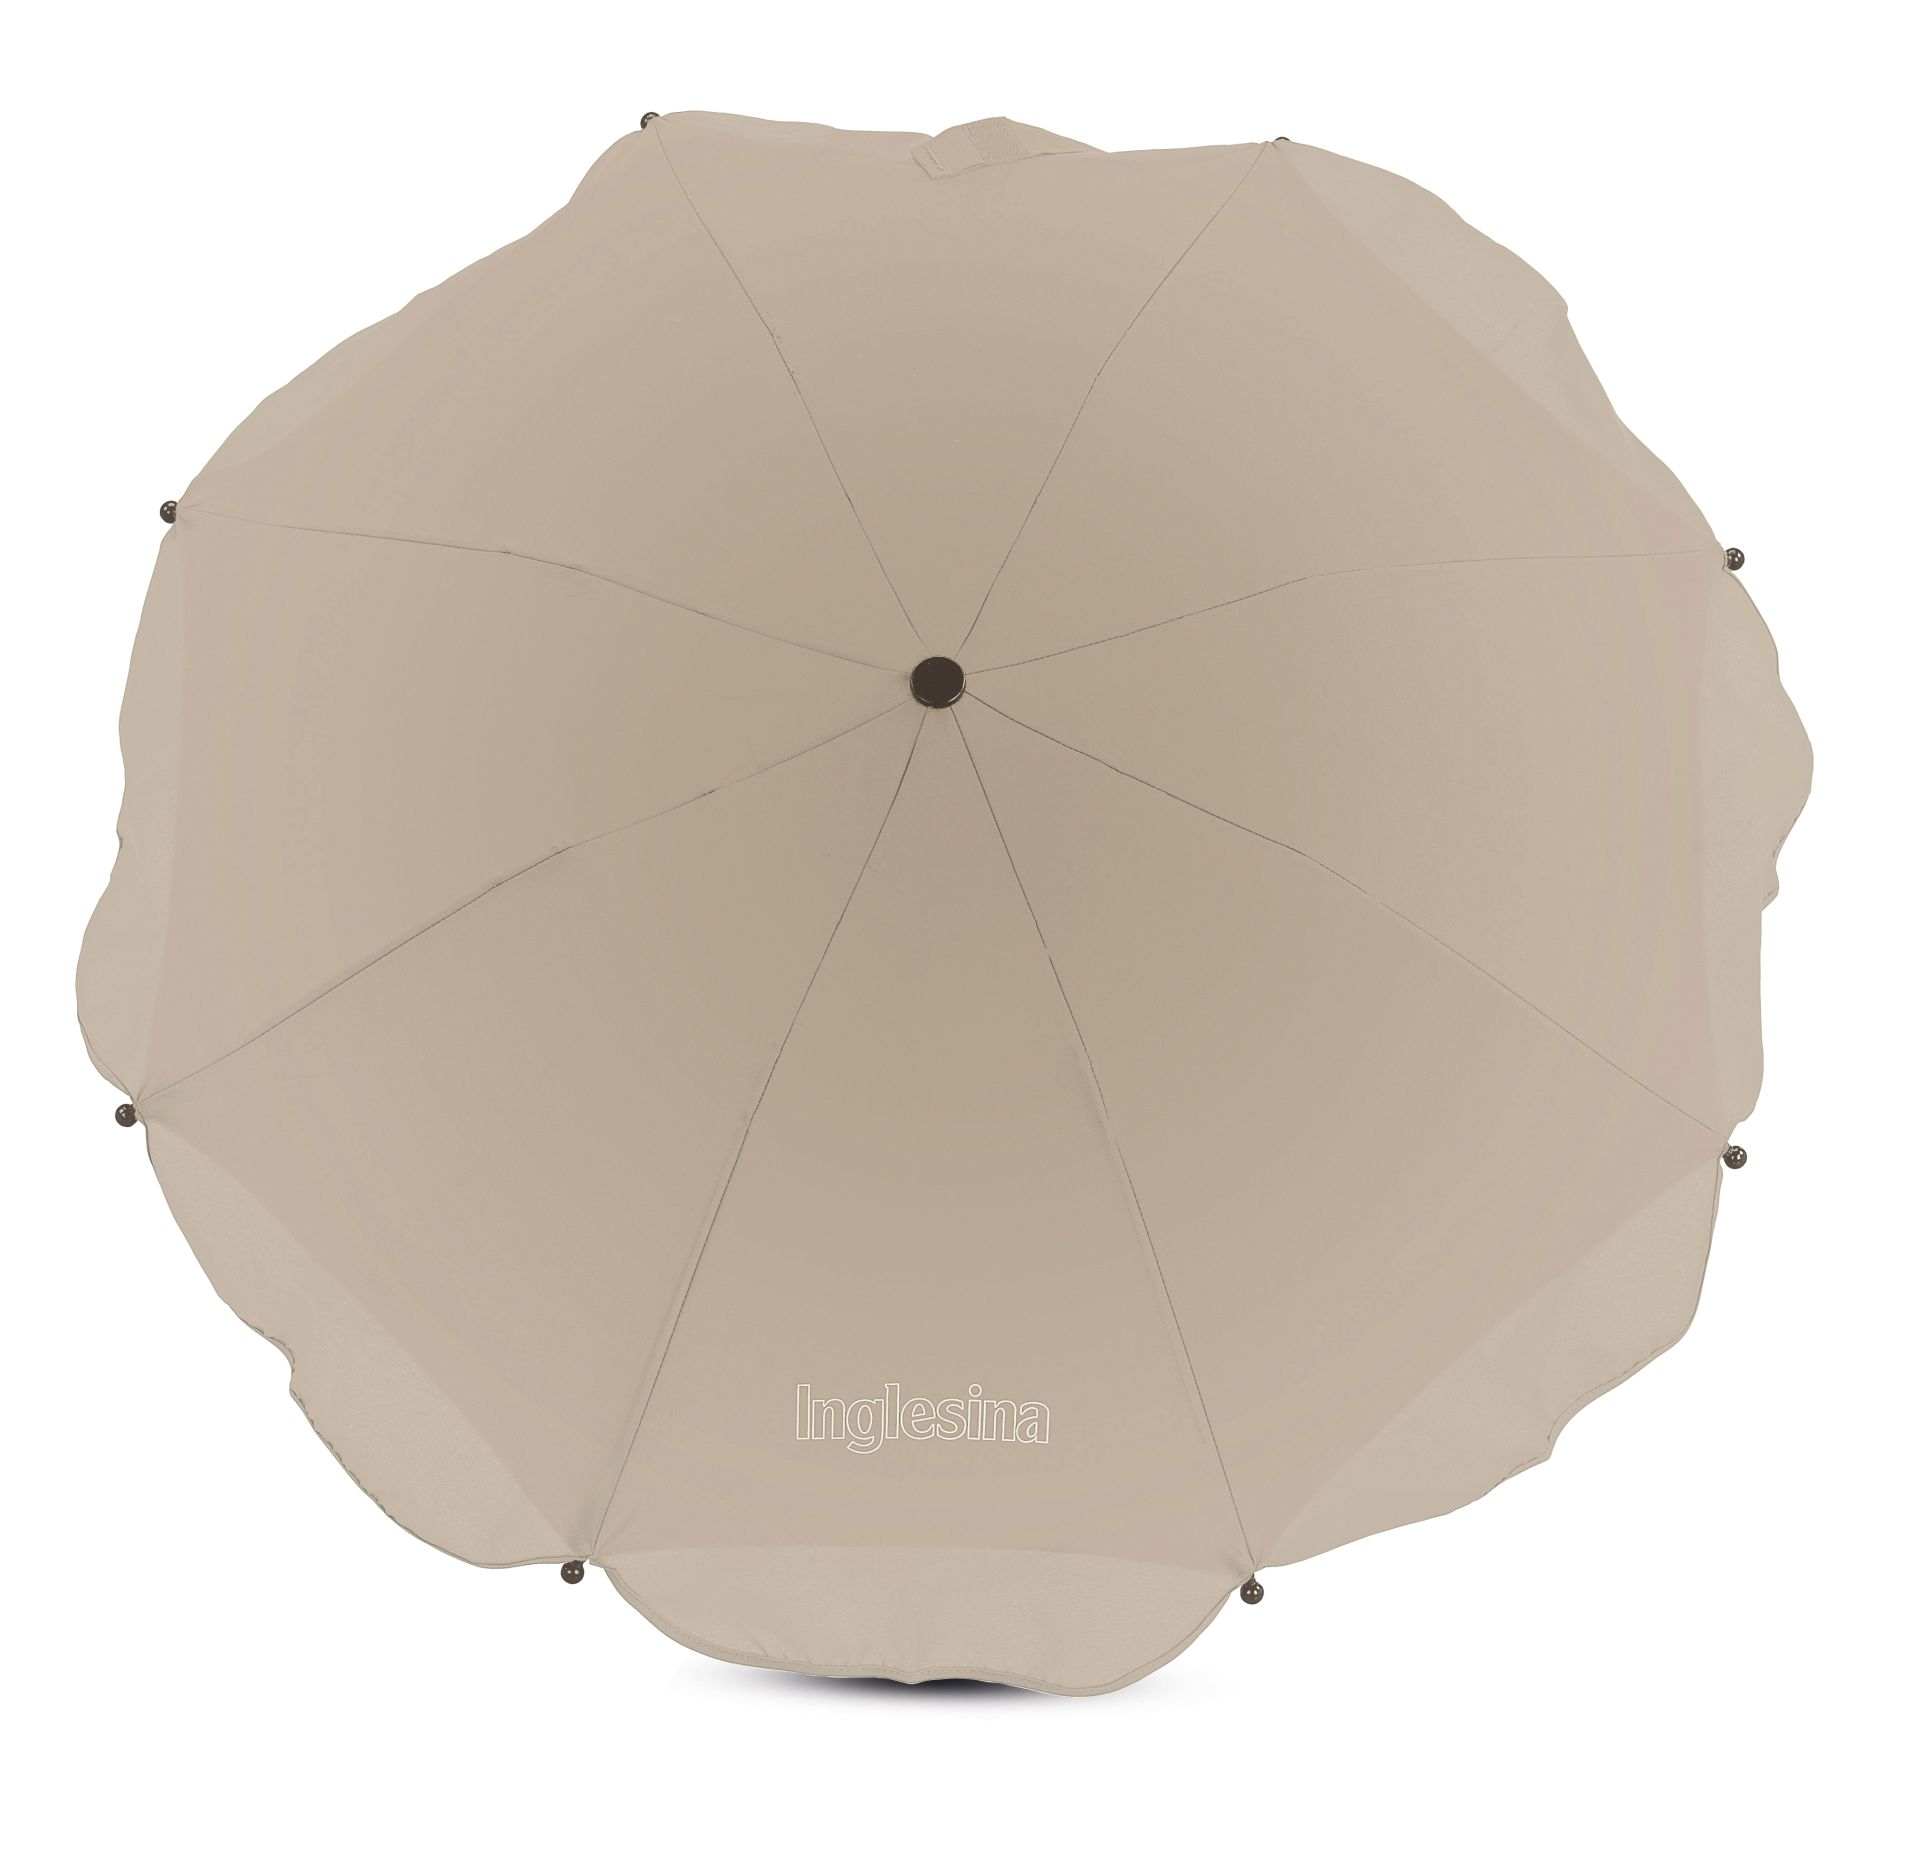 b4a5c9dd7e4 Inglesina Parasol -   Inglesina parasol – The perfect protection on warm  and sunny days –